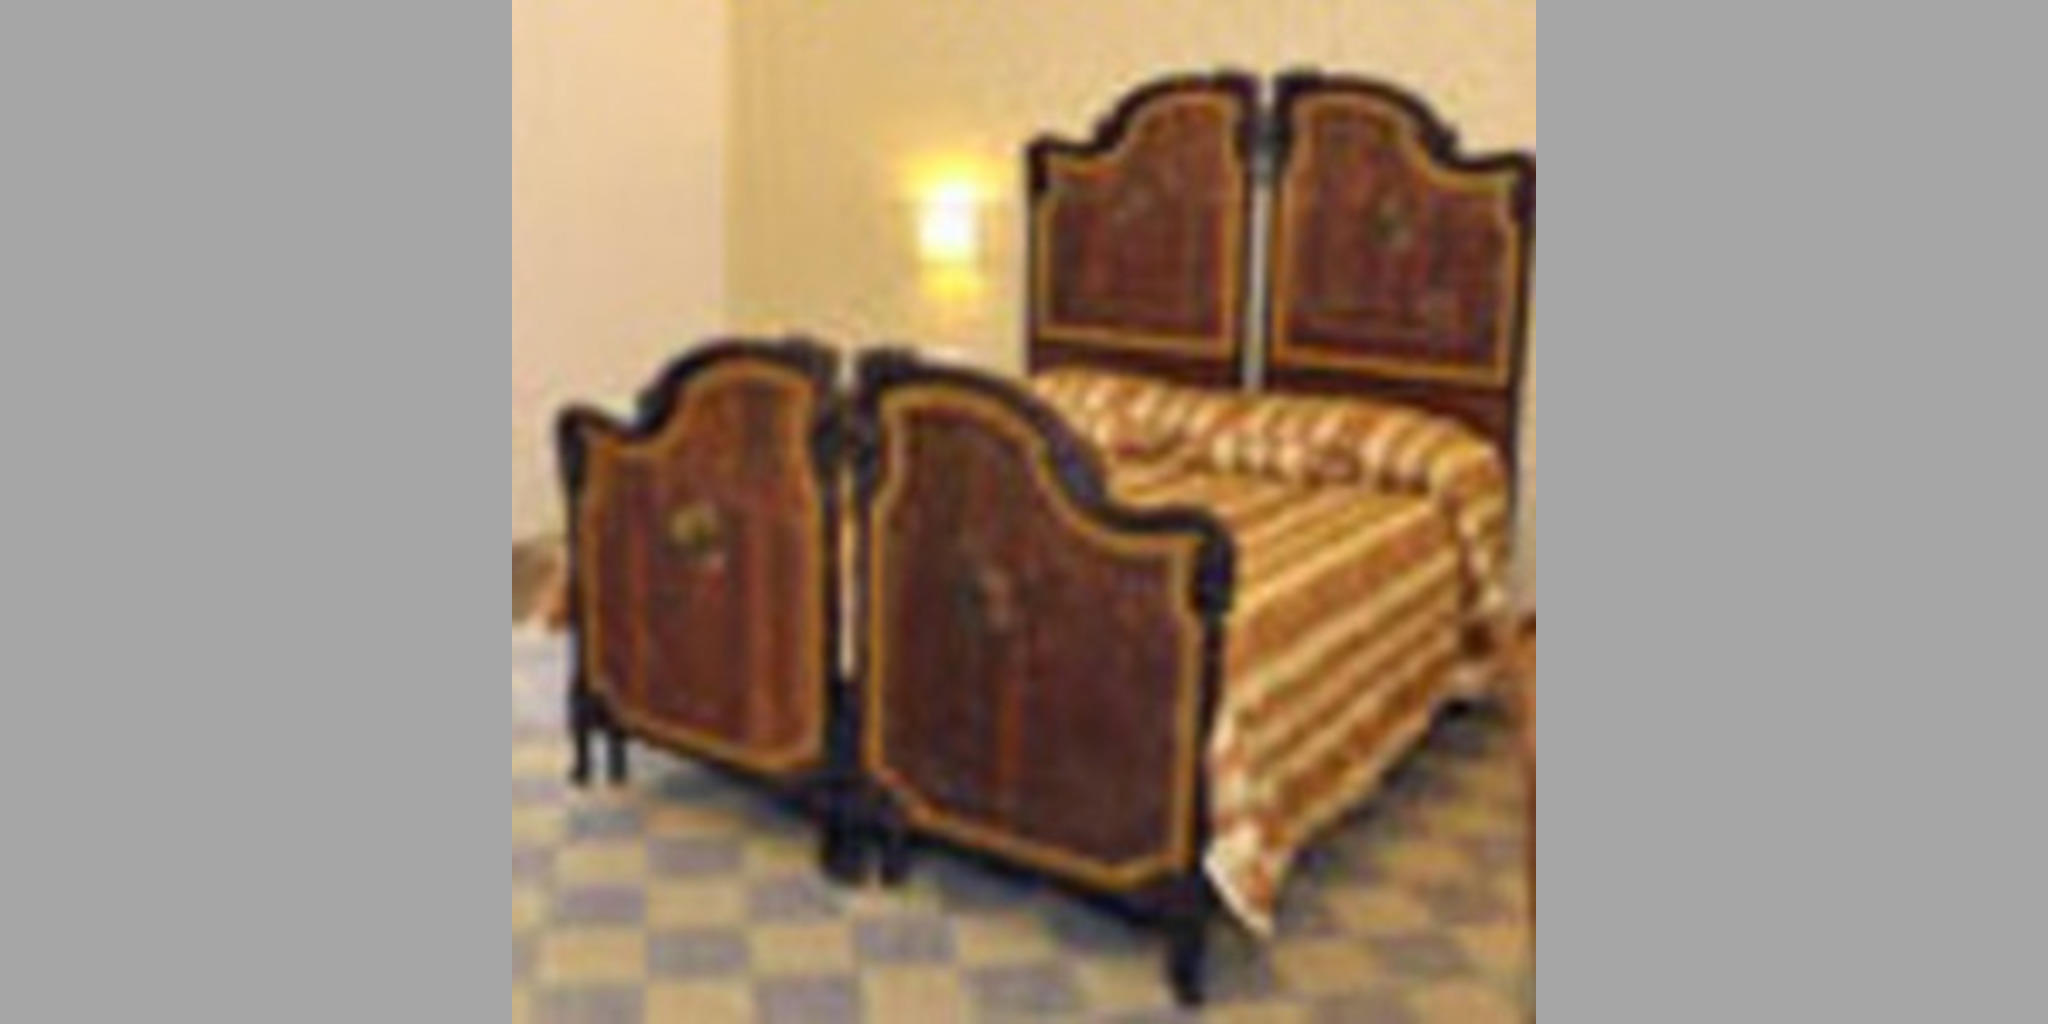 Bed & Breakfast Palermo - Palermo_Pirri